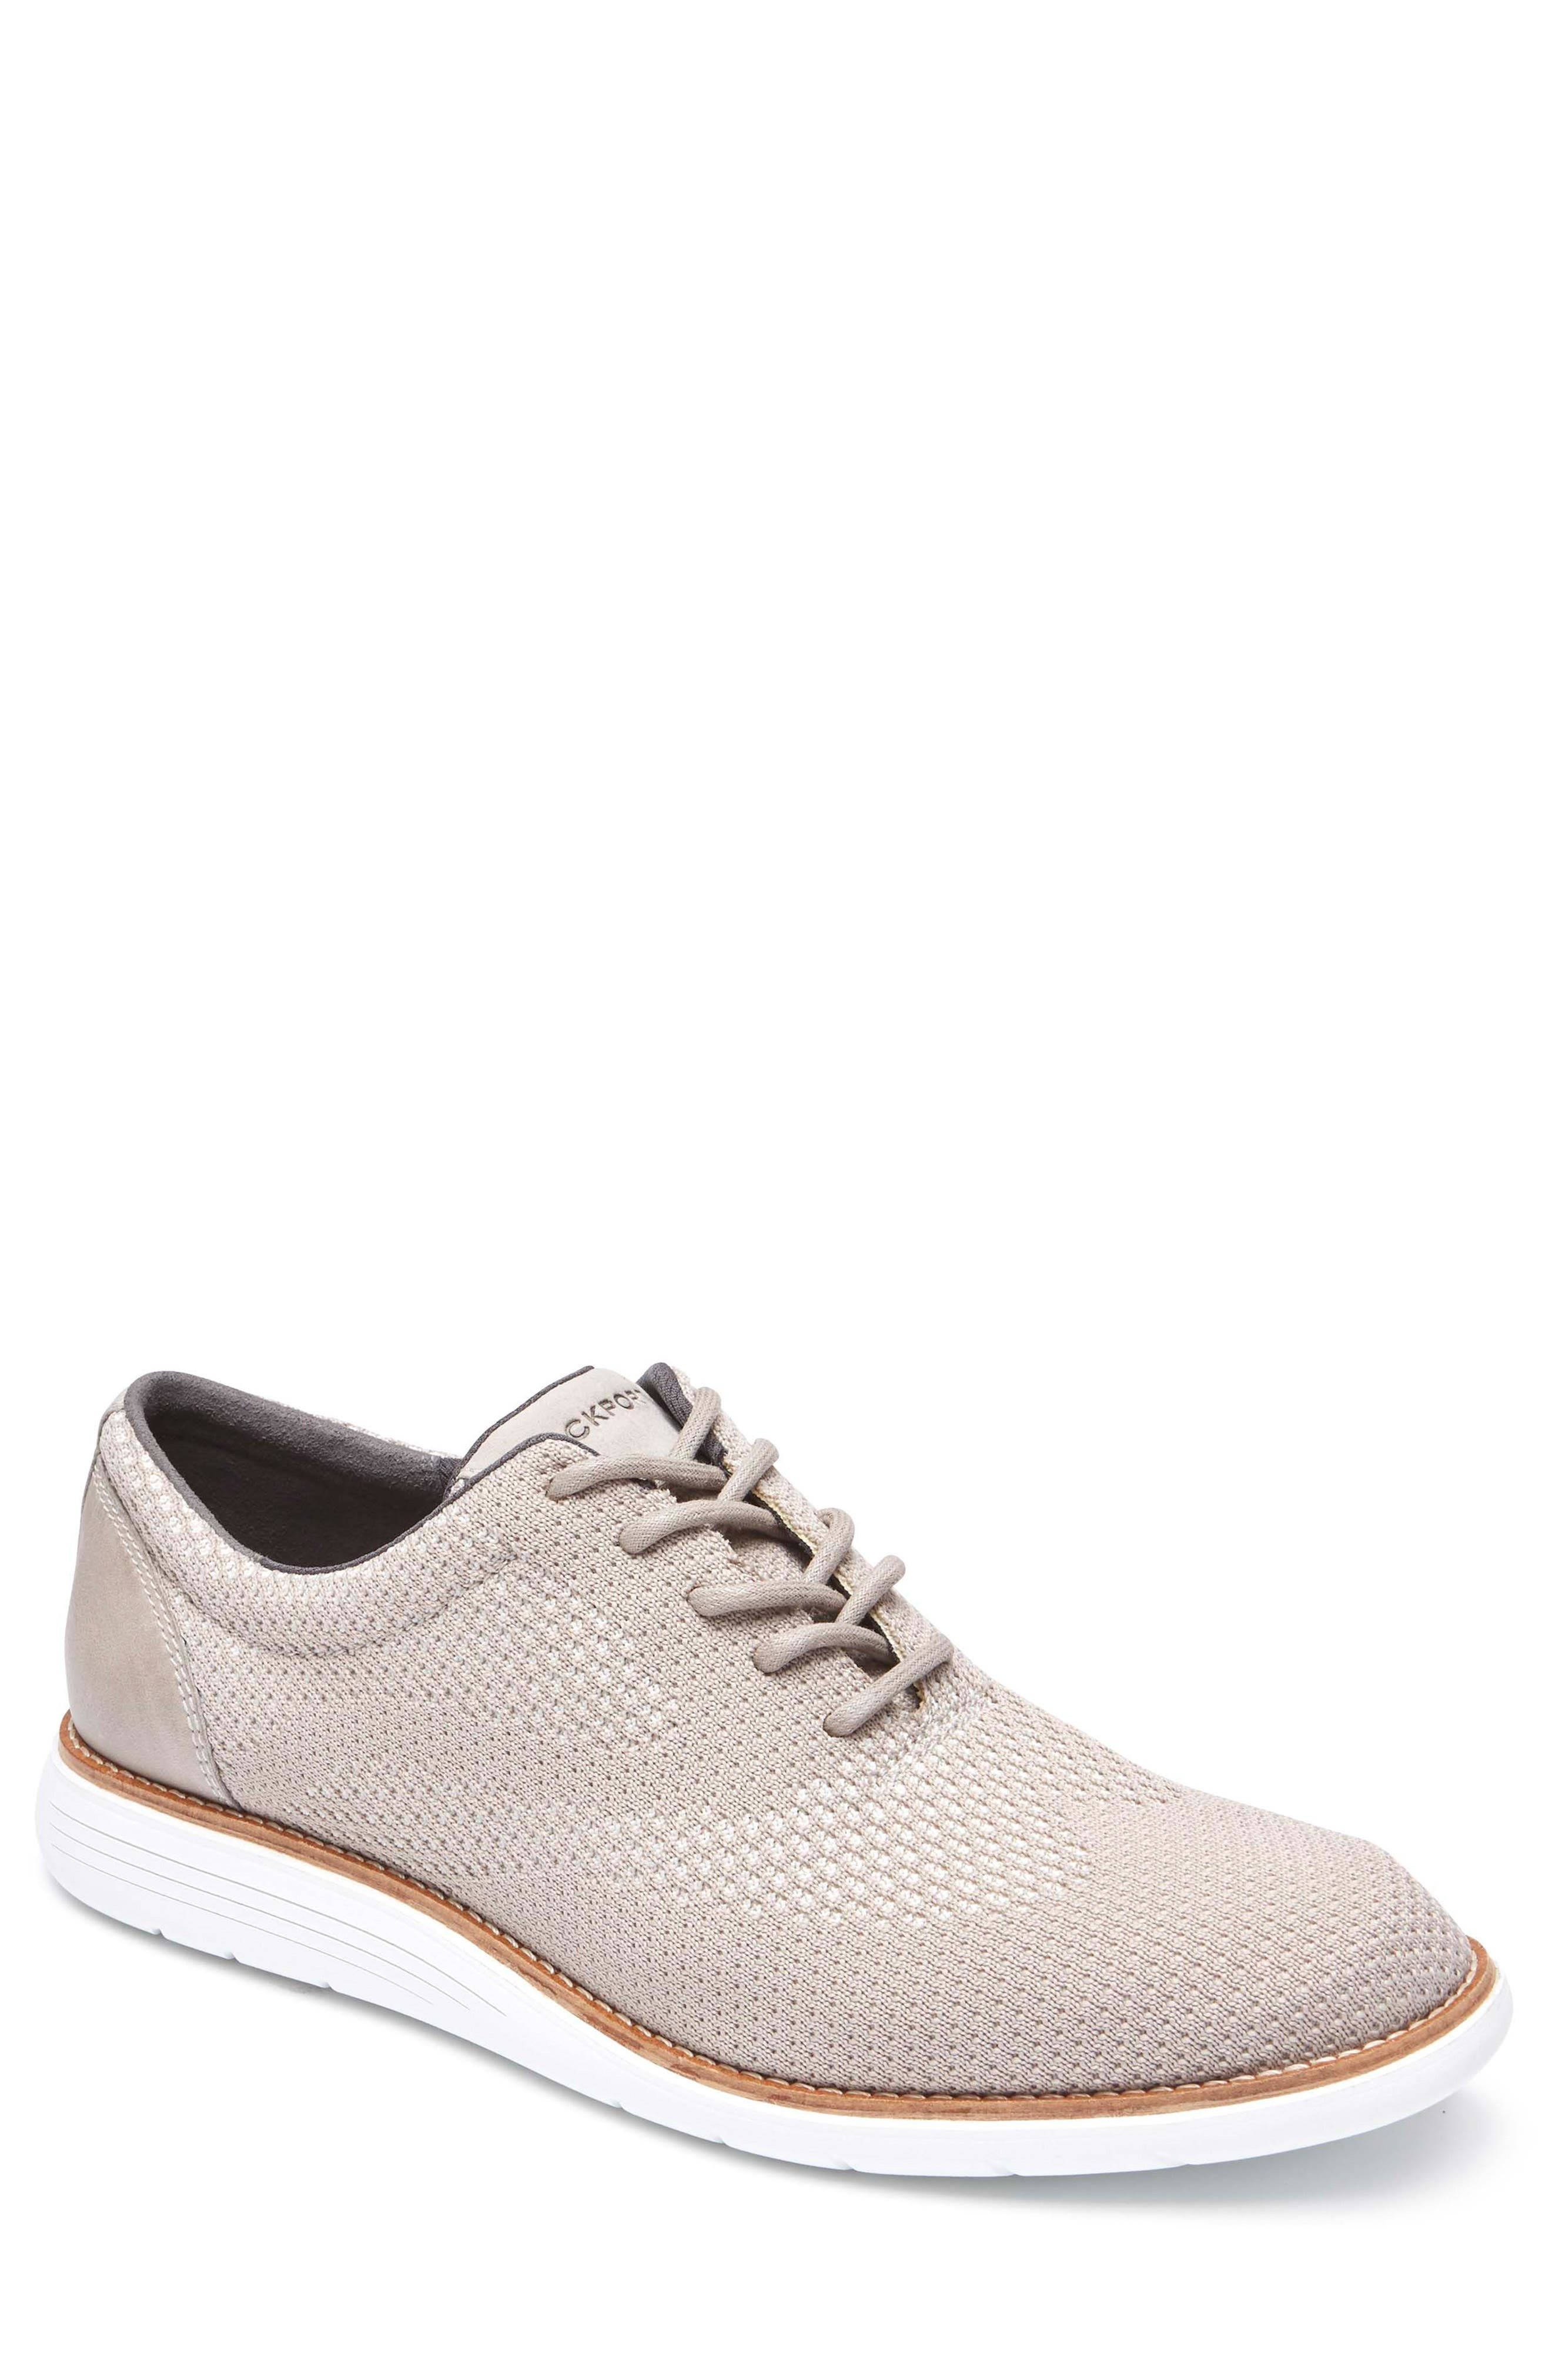 Total Motion Sport Oxford,                         Main,                         color, ROCKSAND LEATHER